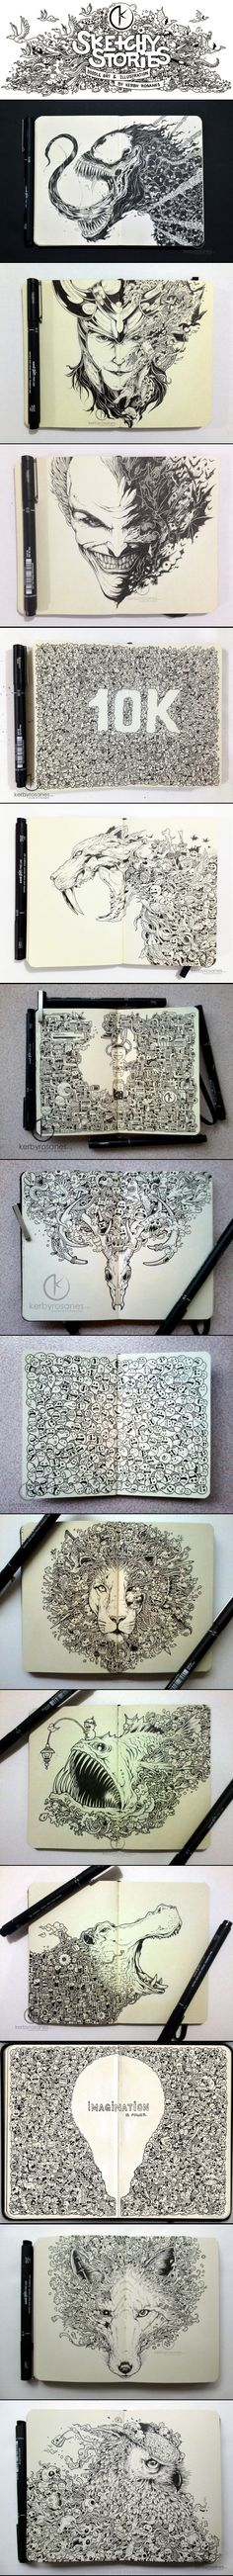 Insanely detailed and precise pen and ink moleskine pages by Kerby Rosanes.